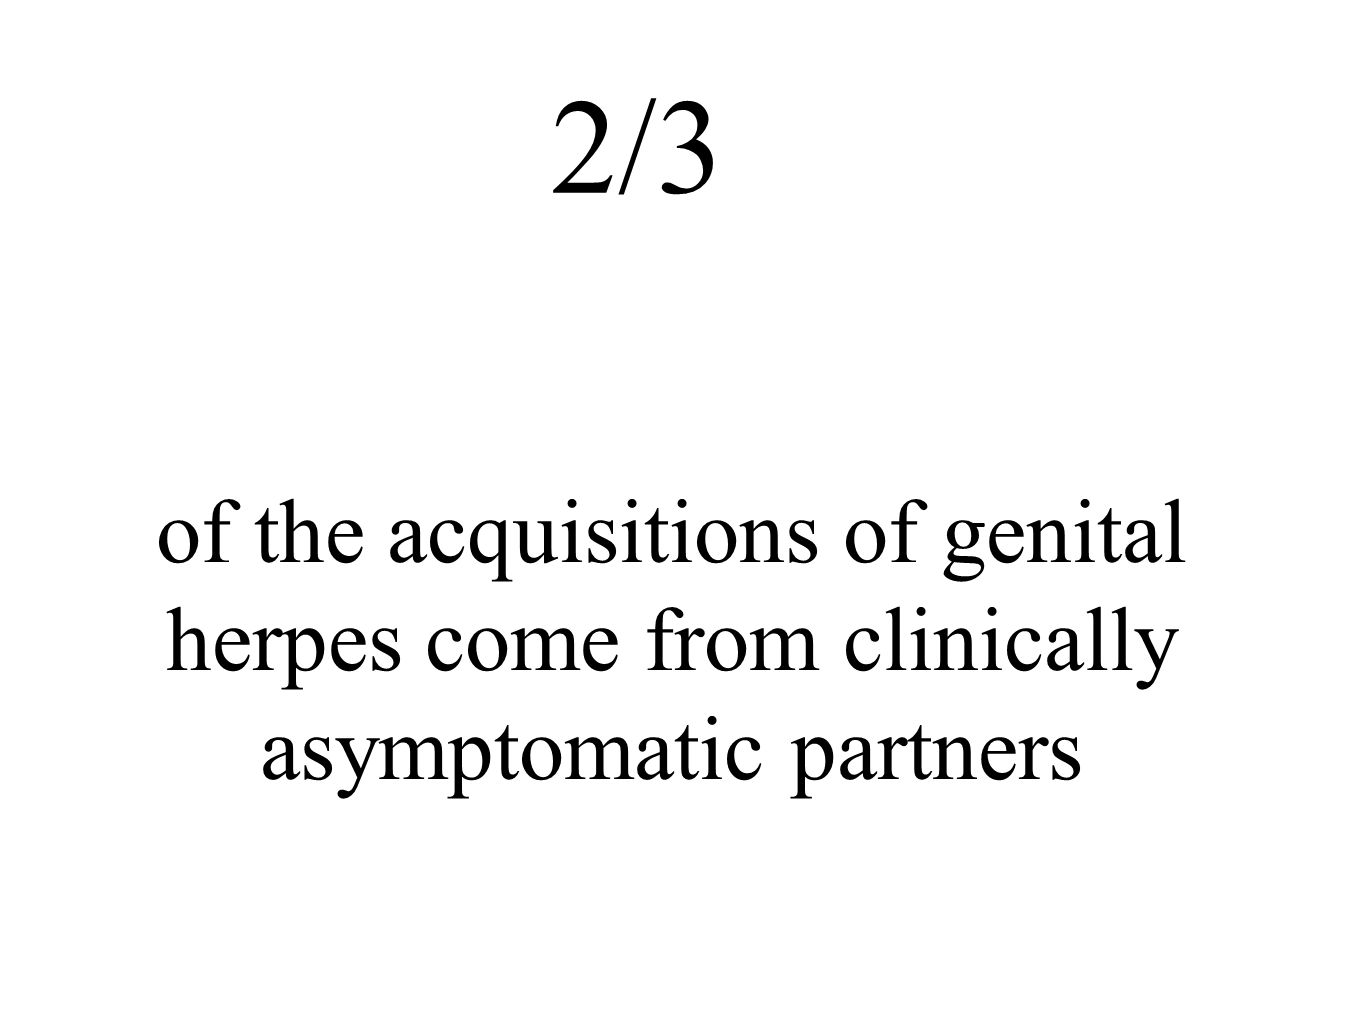 2/3 of the acquisitions of genital herpes come from clinically asymptomatic partners